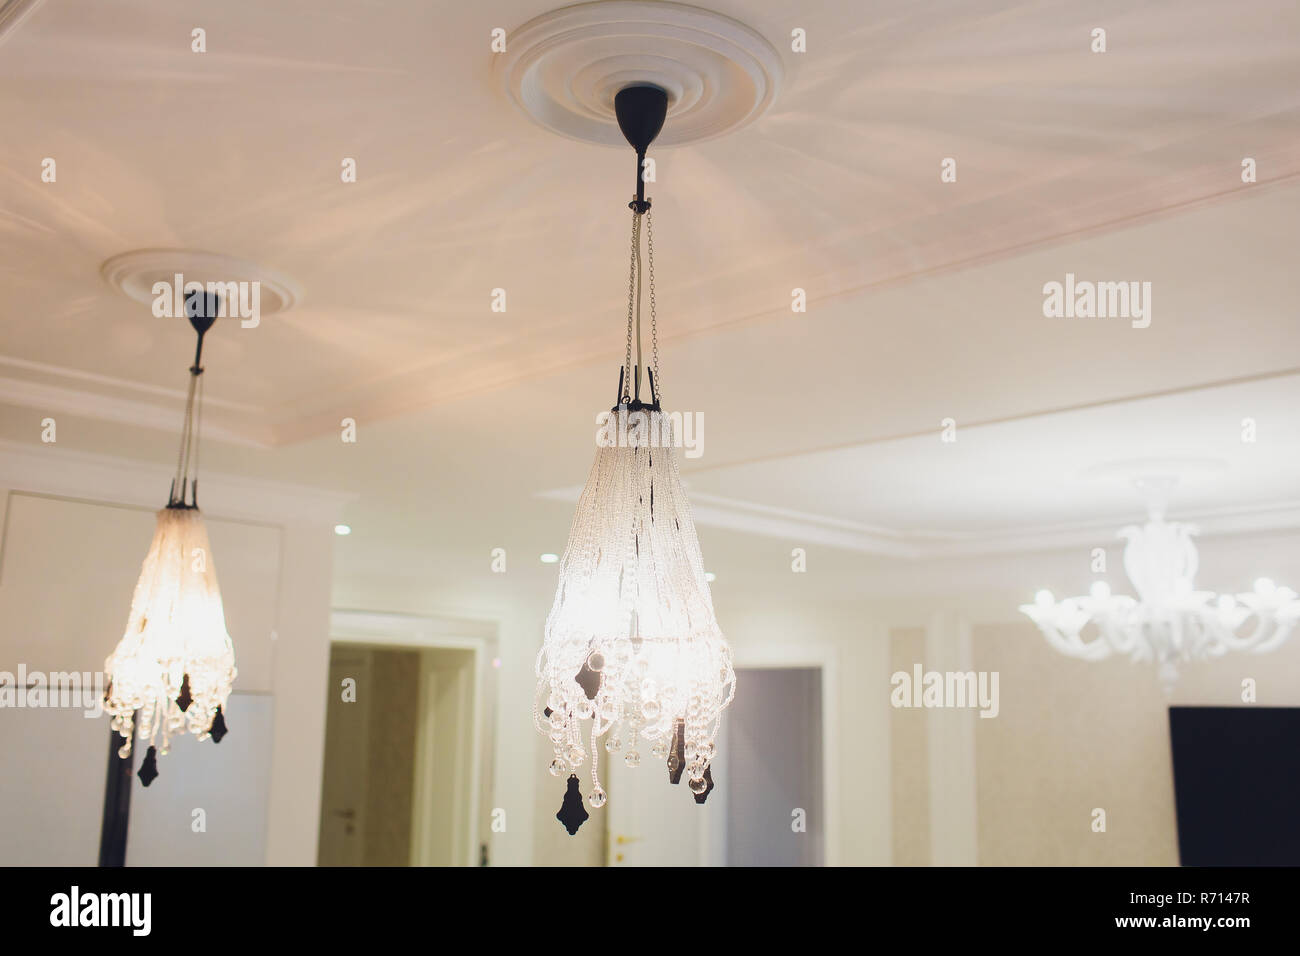 Modern Chandeliers For House The Best Lighting For Every Room Bedroom Lamps Expressive Light Fixtures Chandelier For Decor Stock Photo Alamy